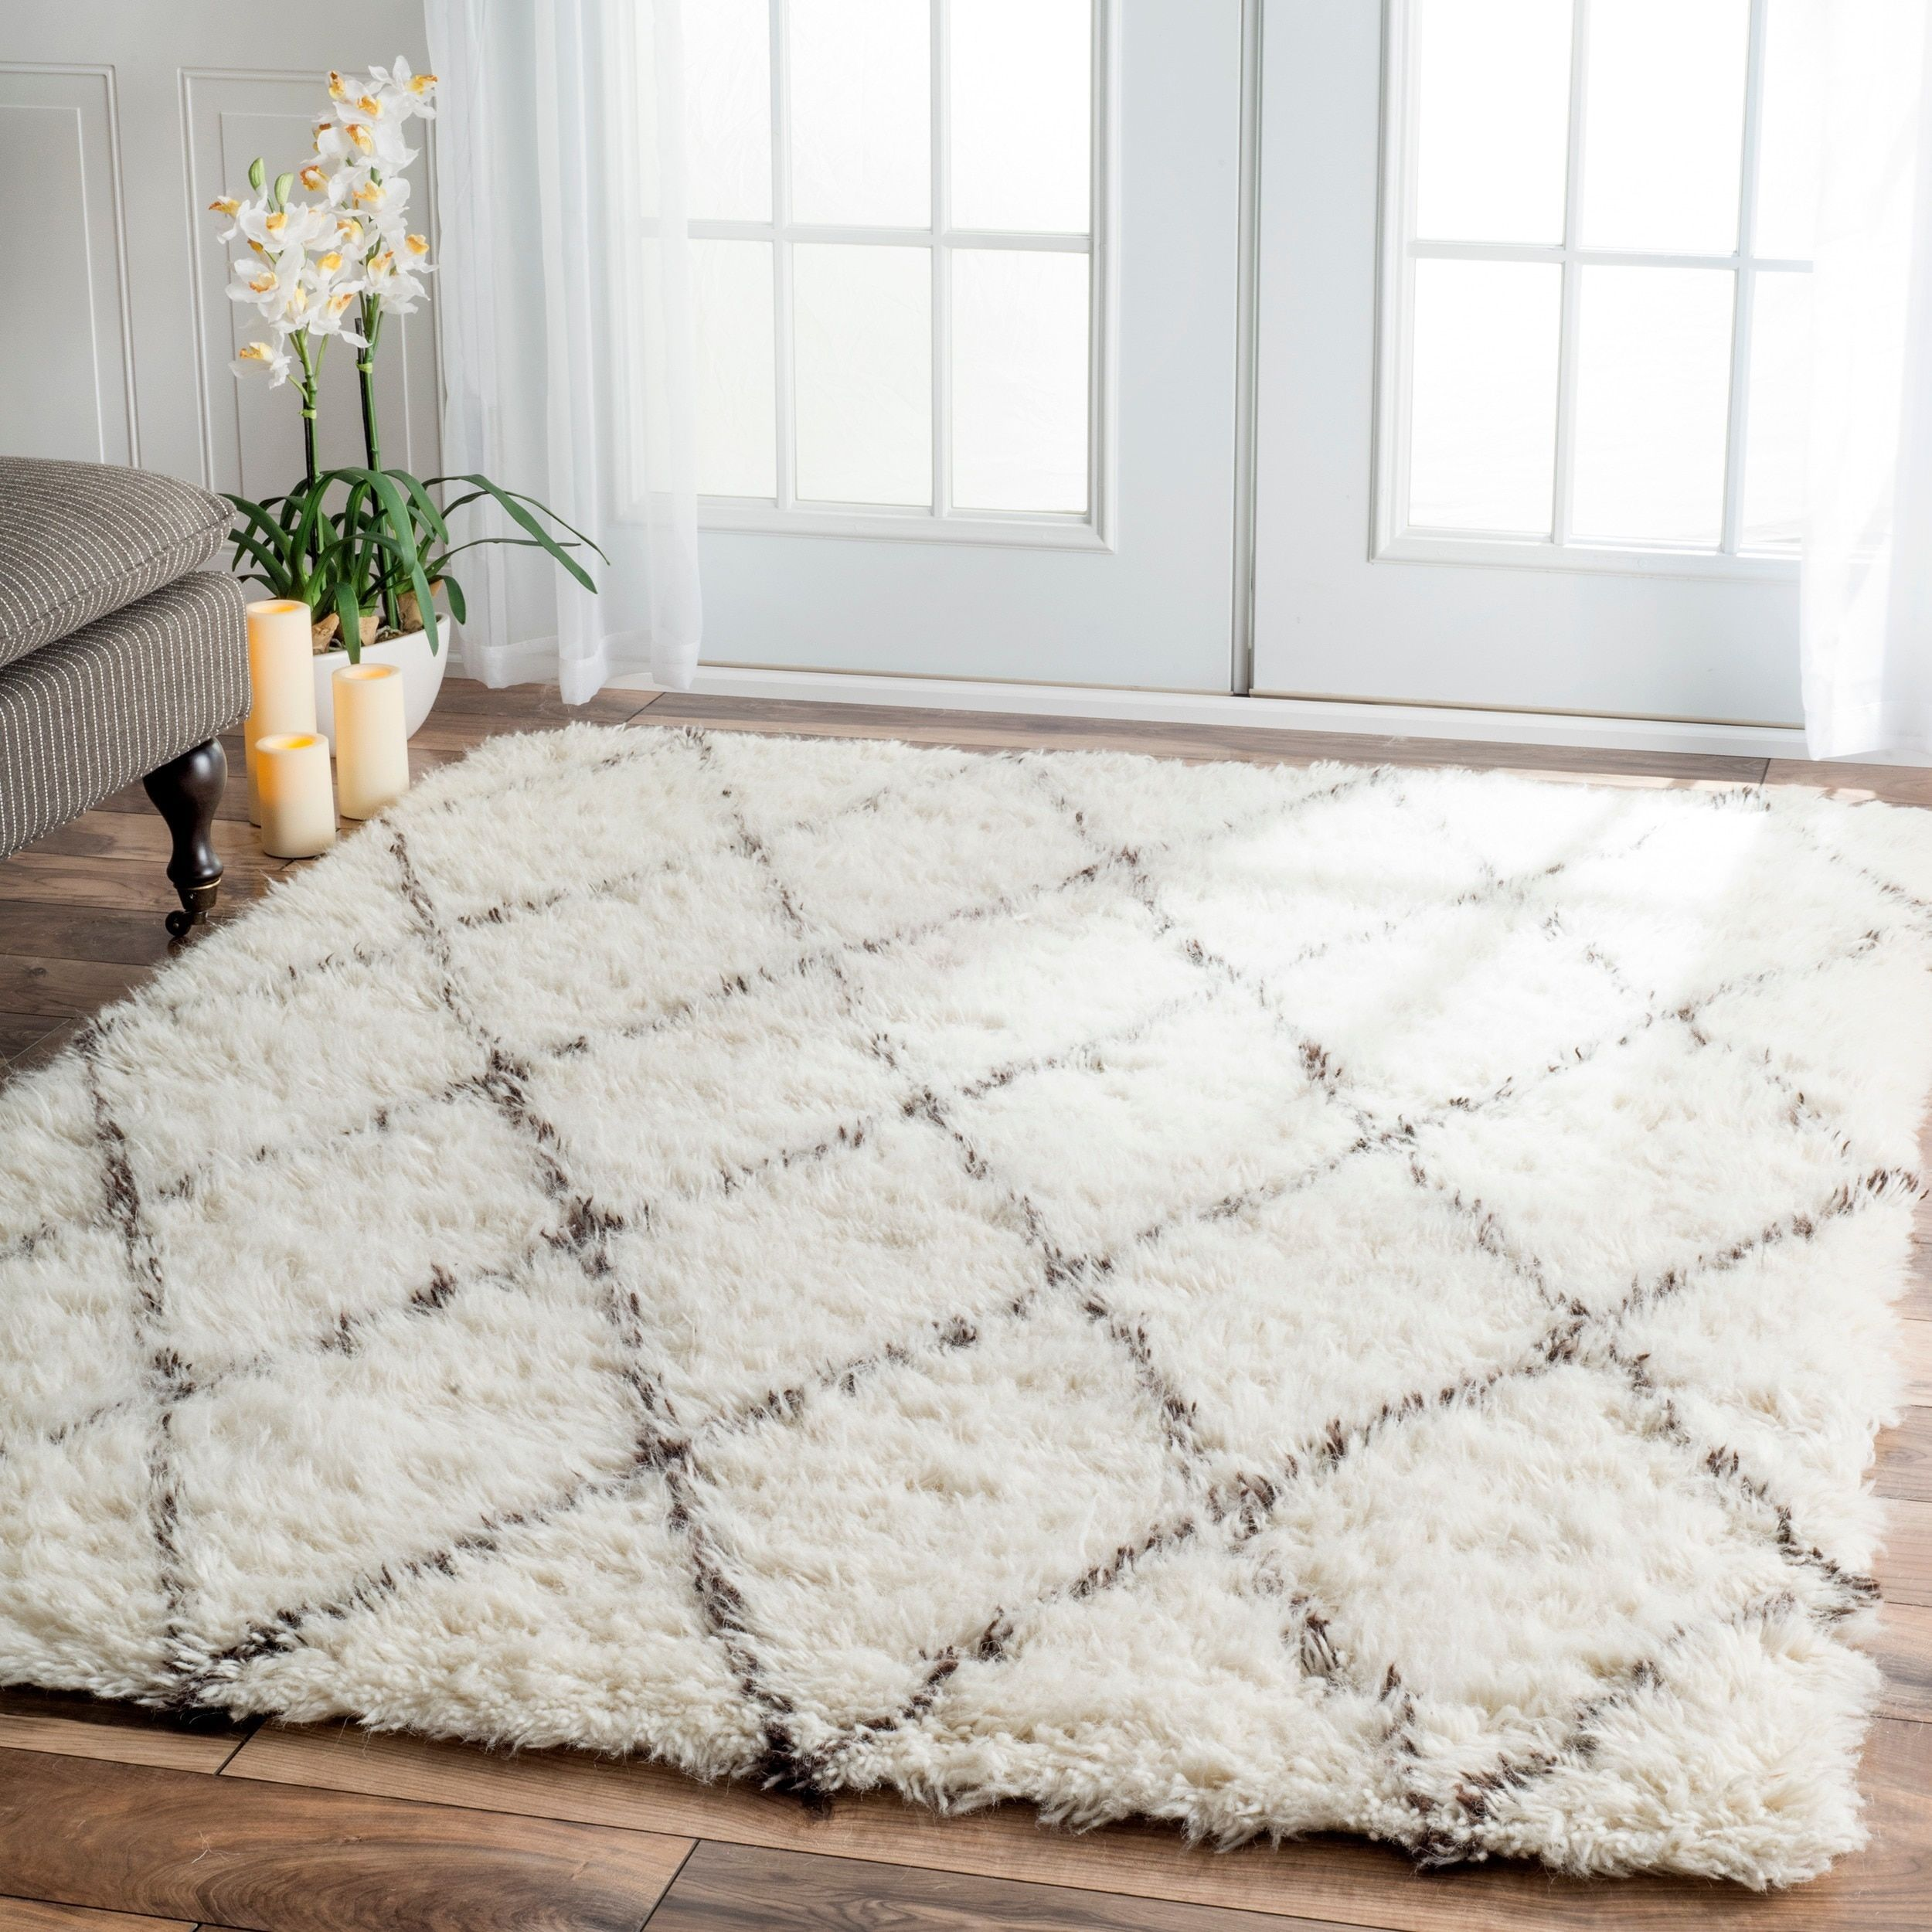 7x9 10x14 Rugs Use Large Area To Bring A New Mood An